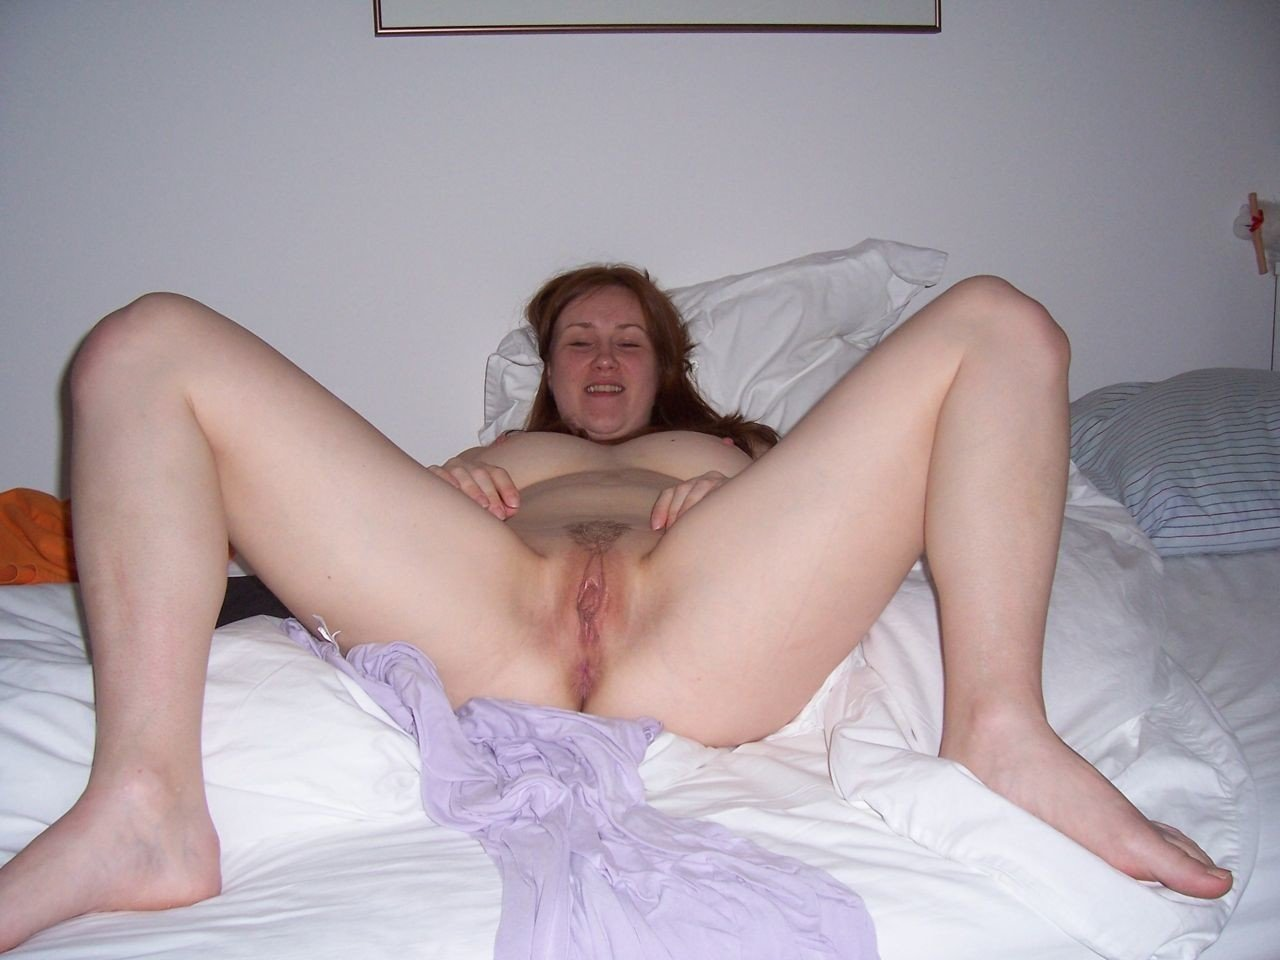 Lesbian sex with straight girls pics